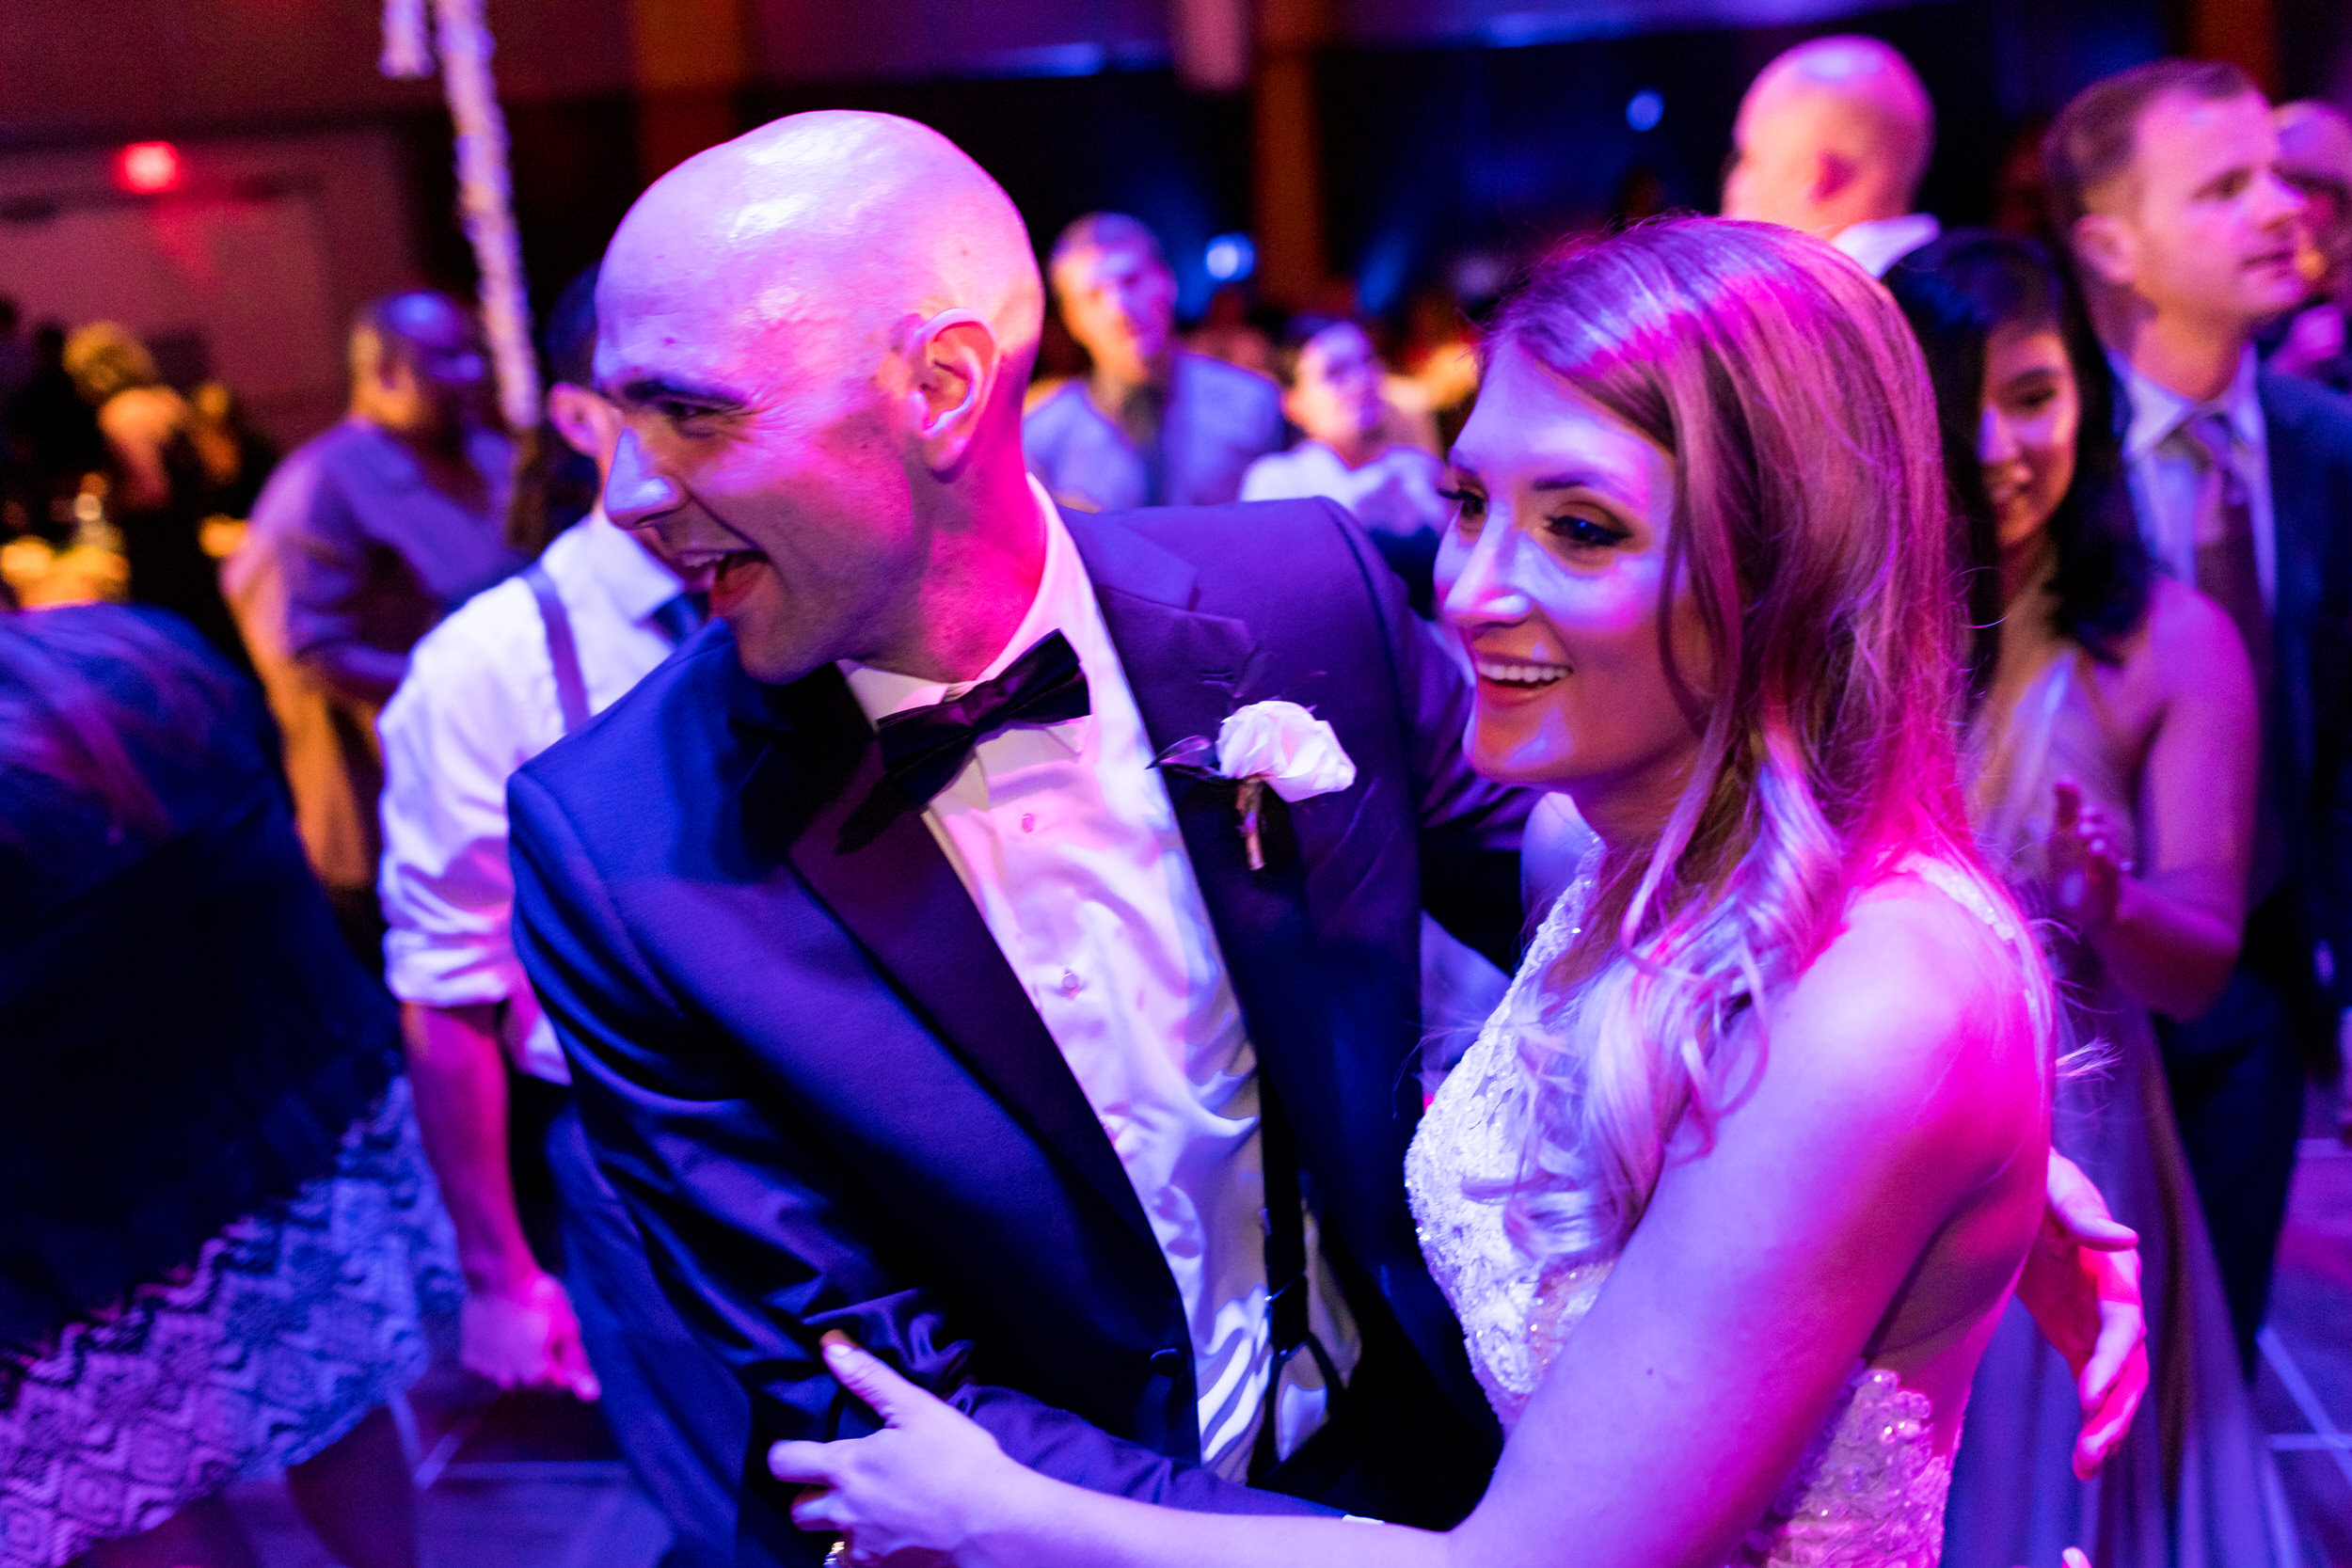 salem_convention_center_wedding_stark_photography_032